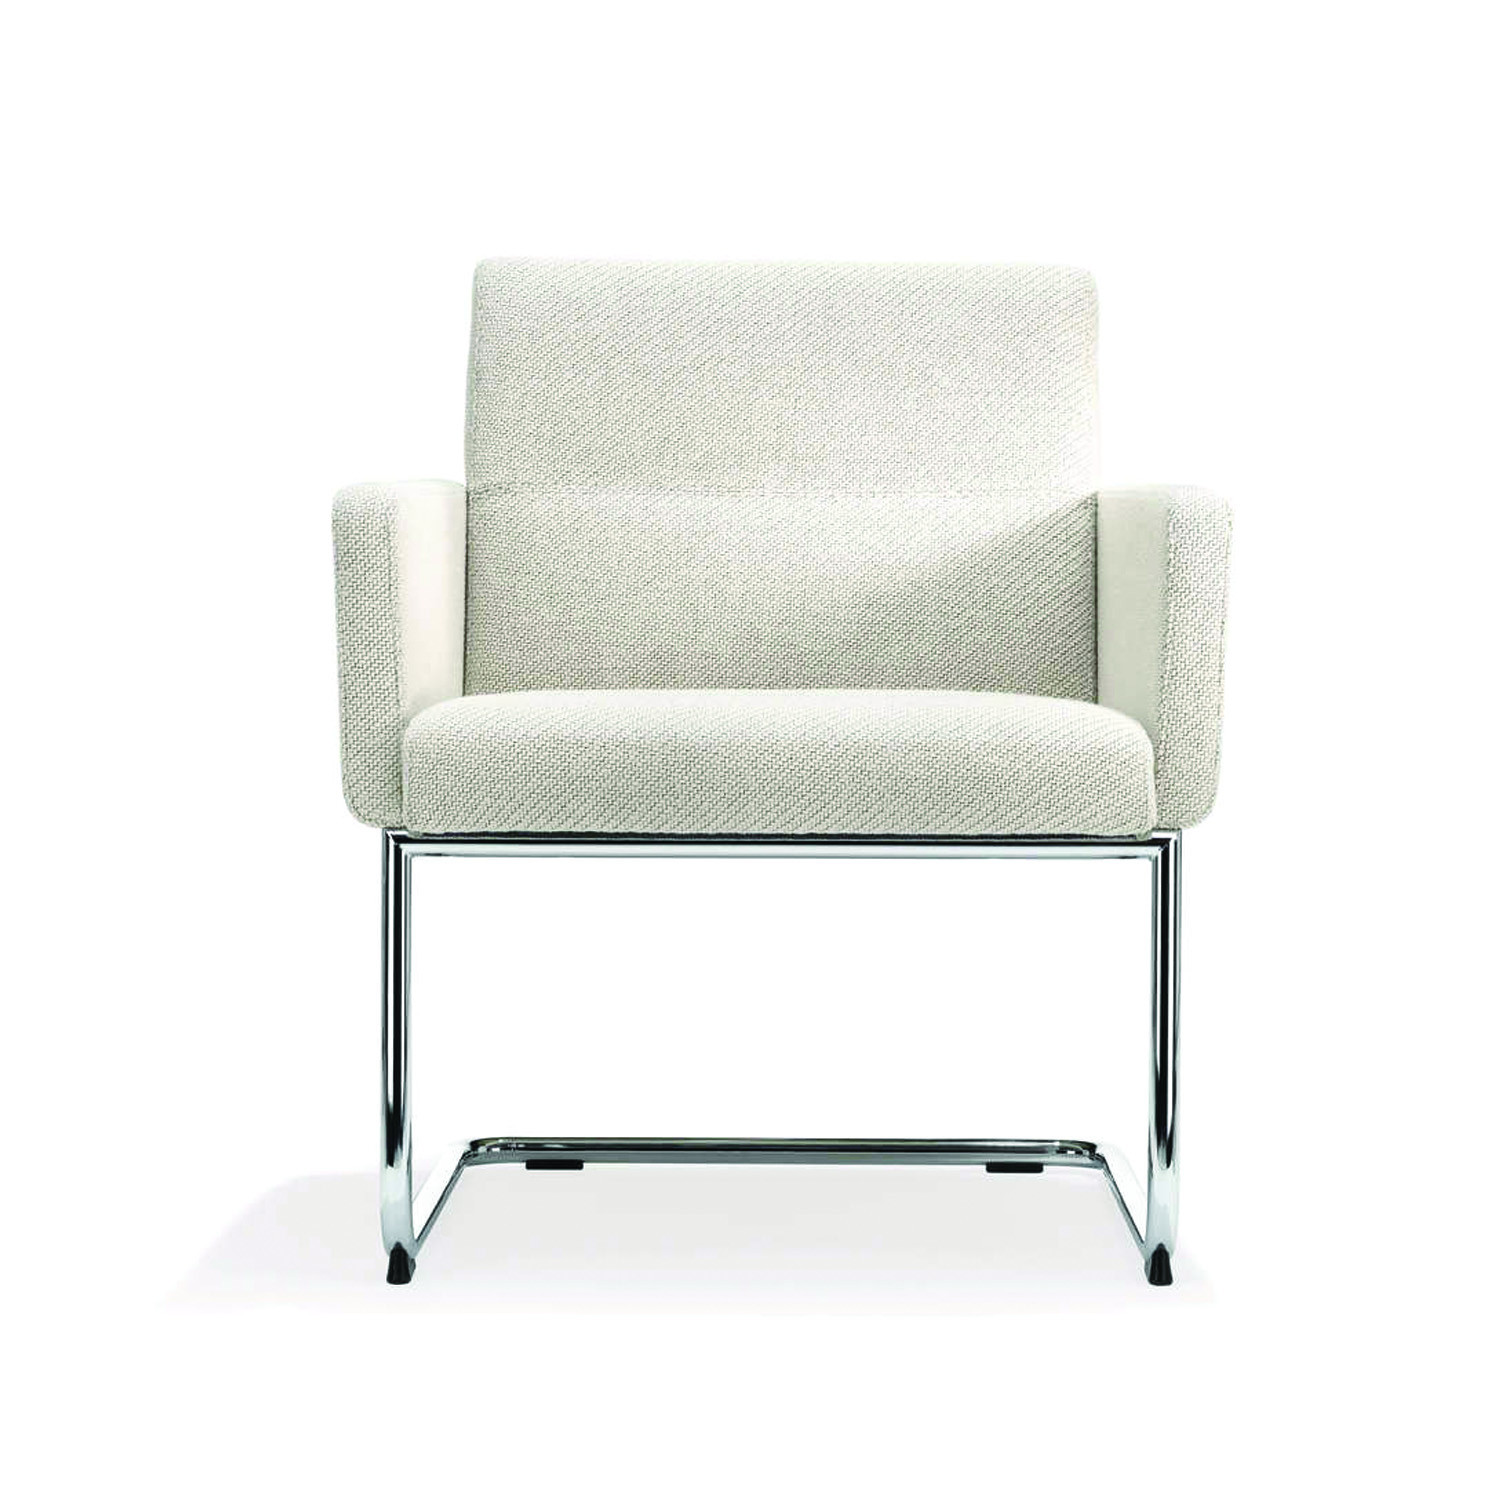 3150 Scorpii Conference Armchair - Cantilever Base